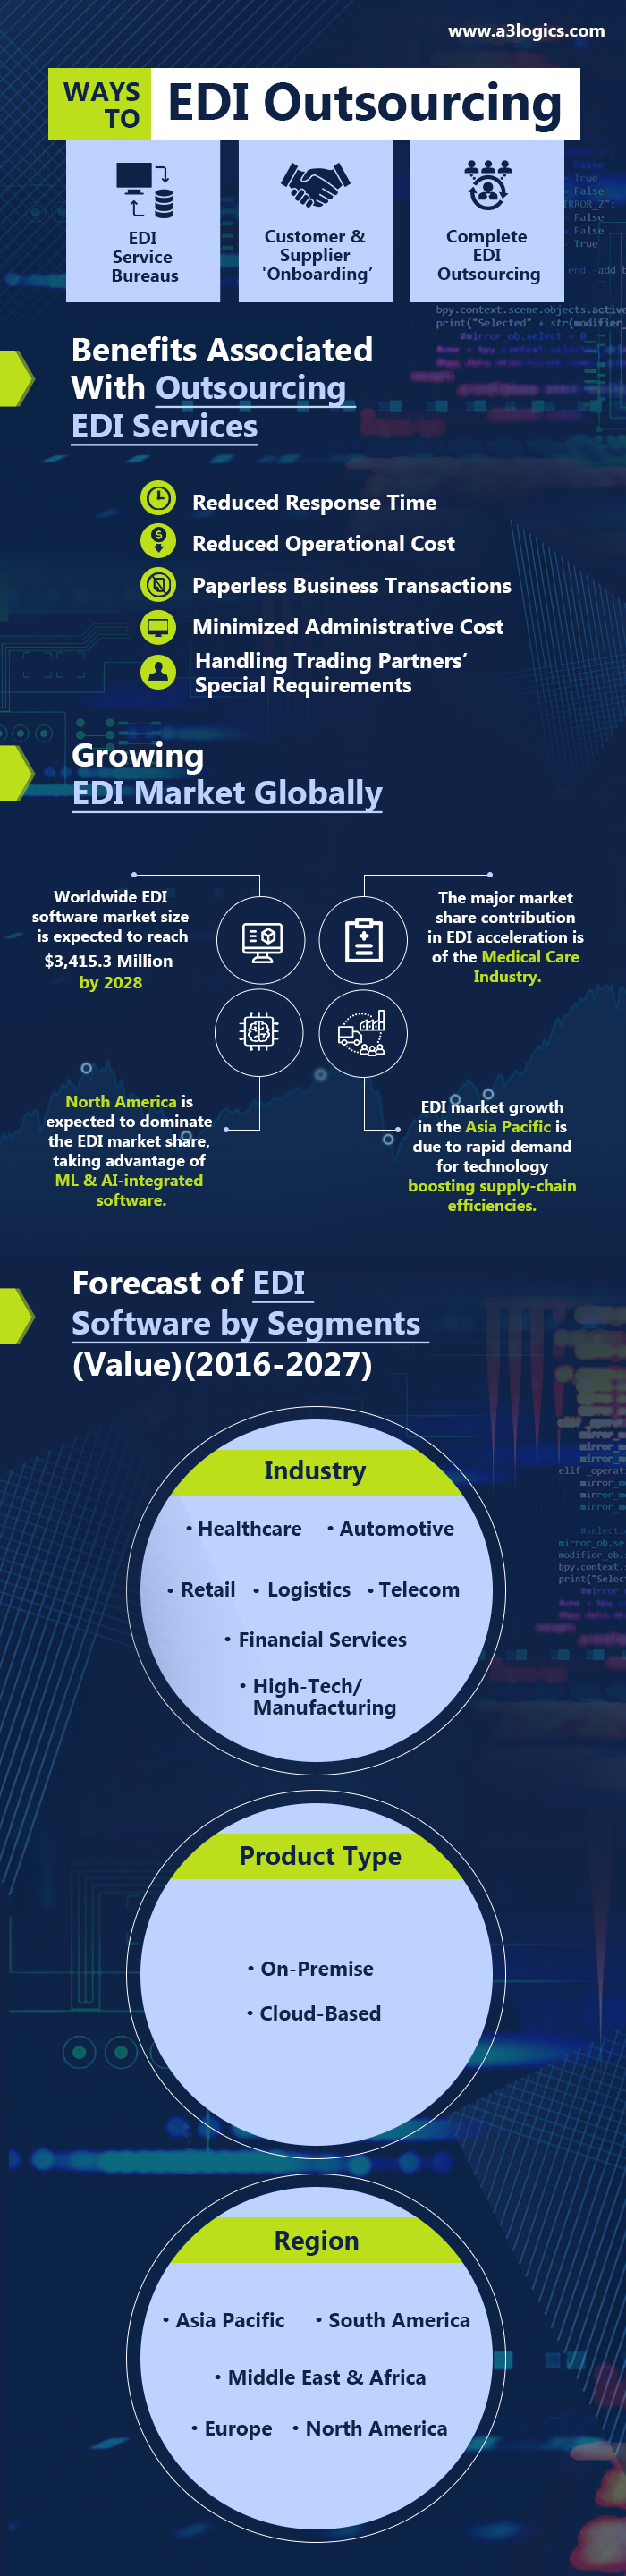 EDI Outsourcing Solutions Infographic